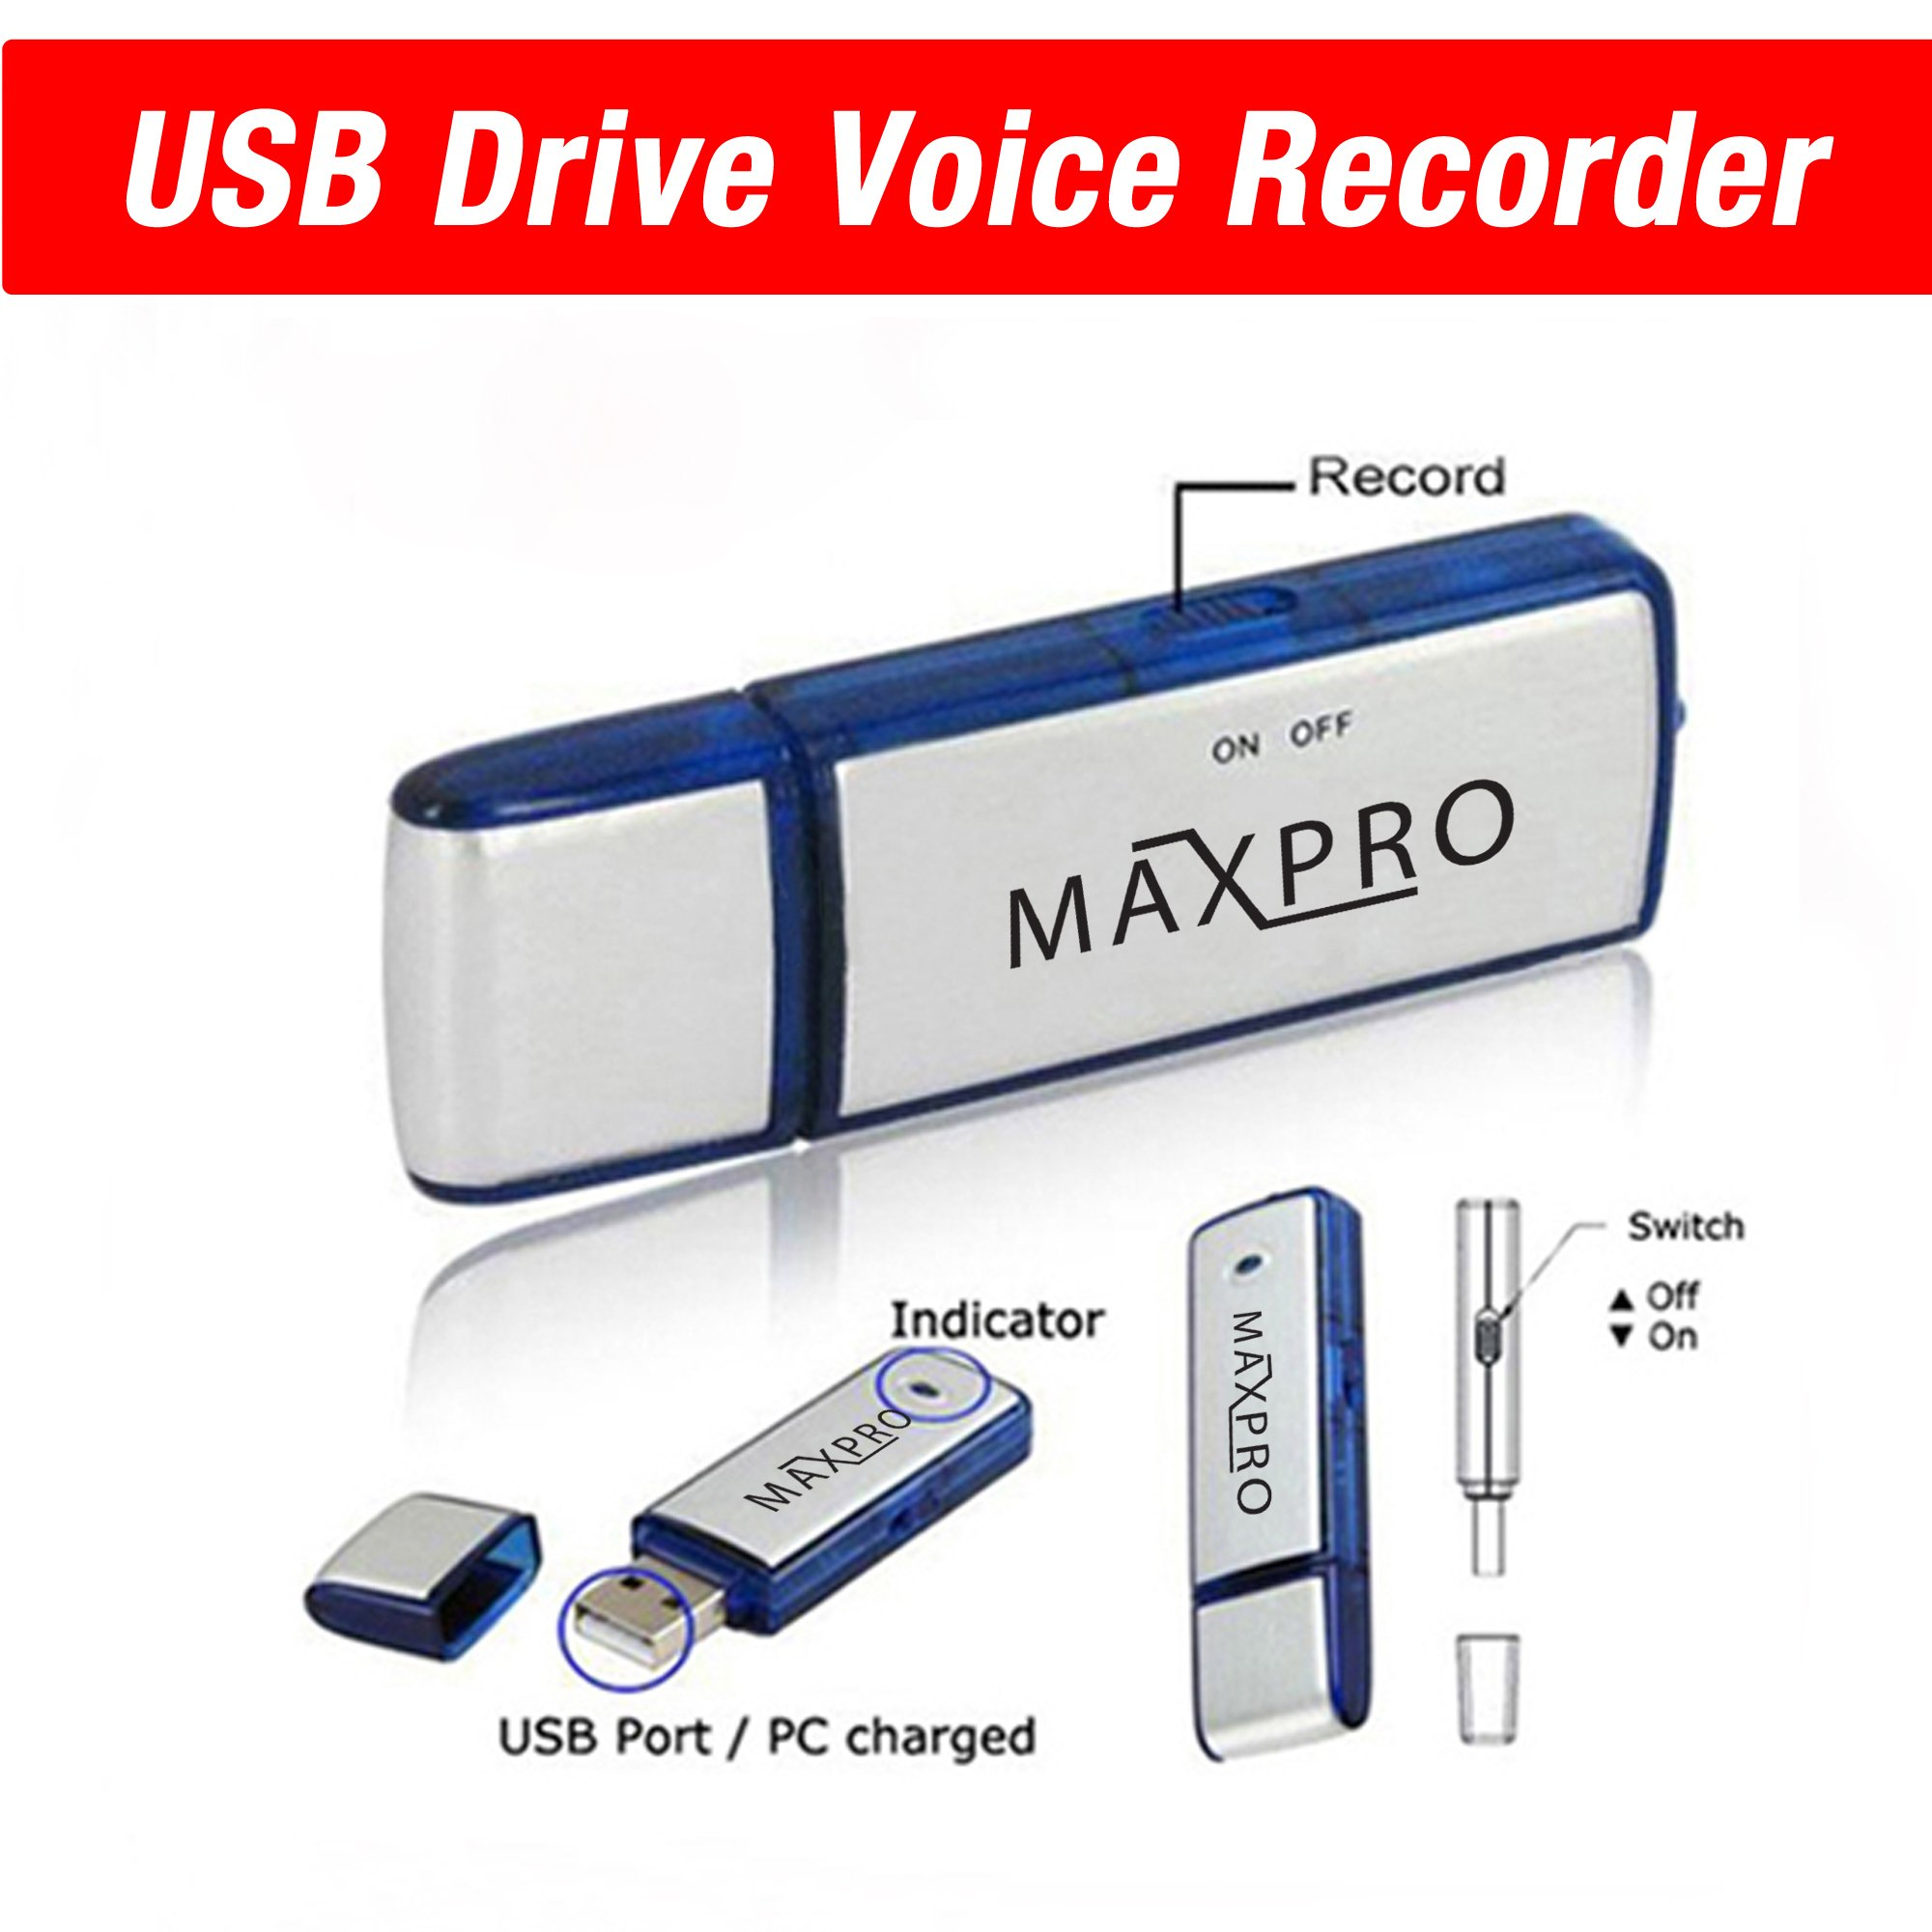 Usb Flash Drive Voice Recorder 8gb by MAXPRO